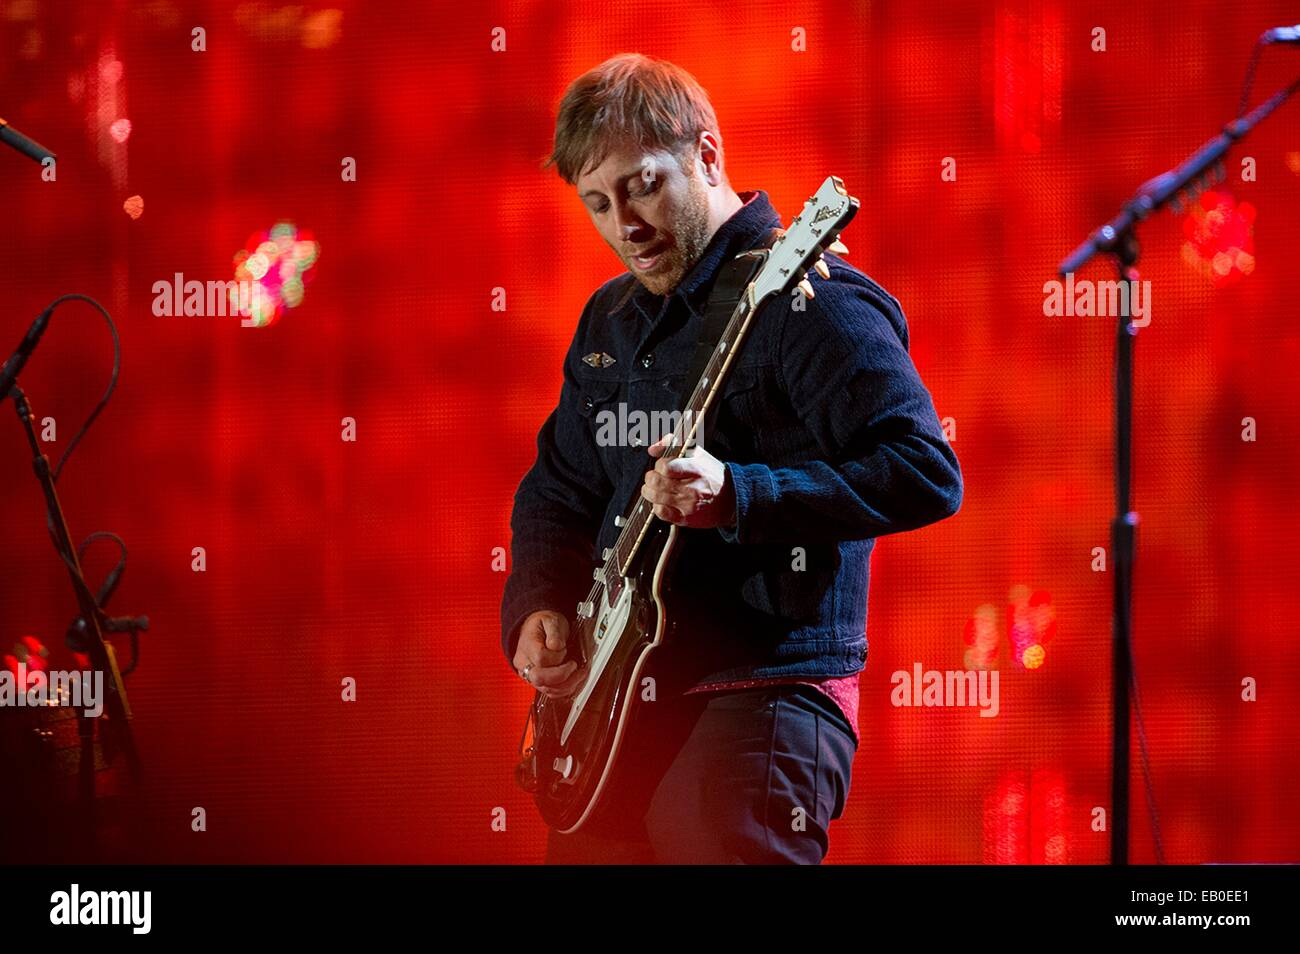 Dan Auerbach, guitarist and vocalist for The Black Keys, performs during the Concert for Valor November 11, 2014 - Stock Image